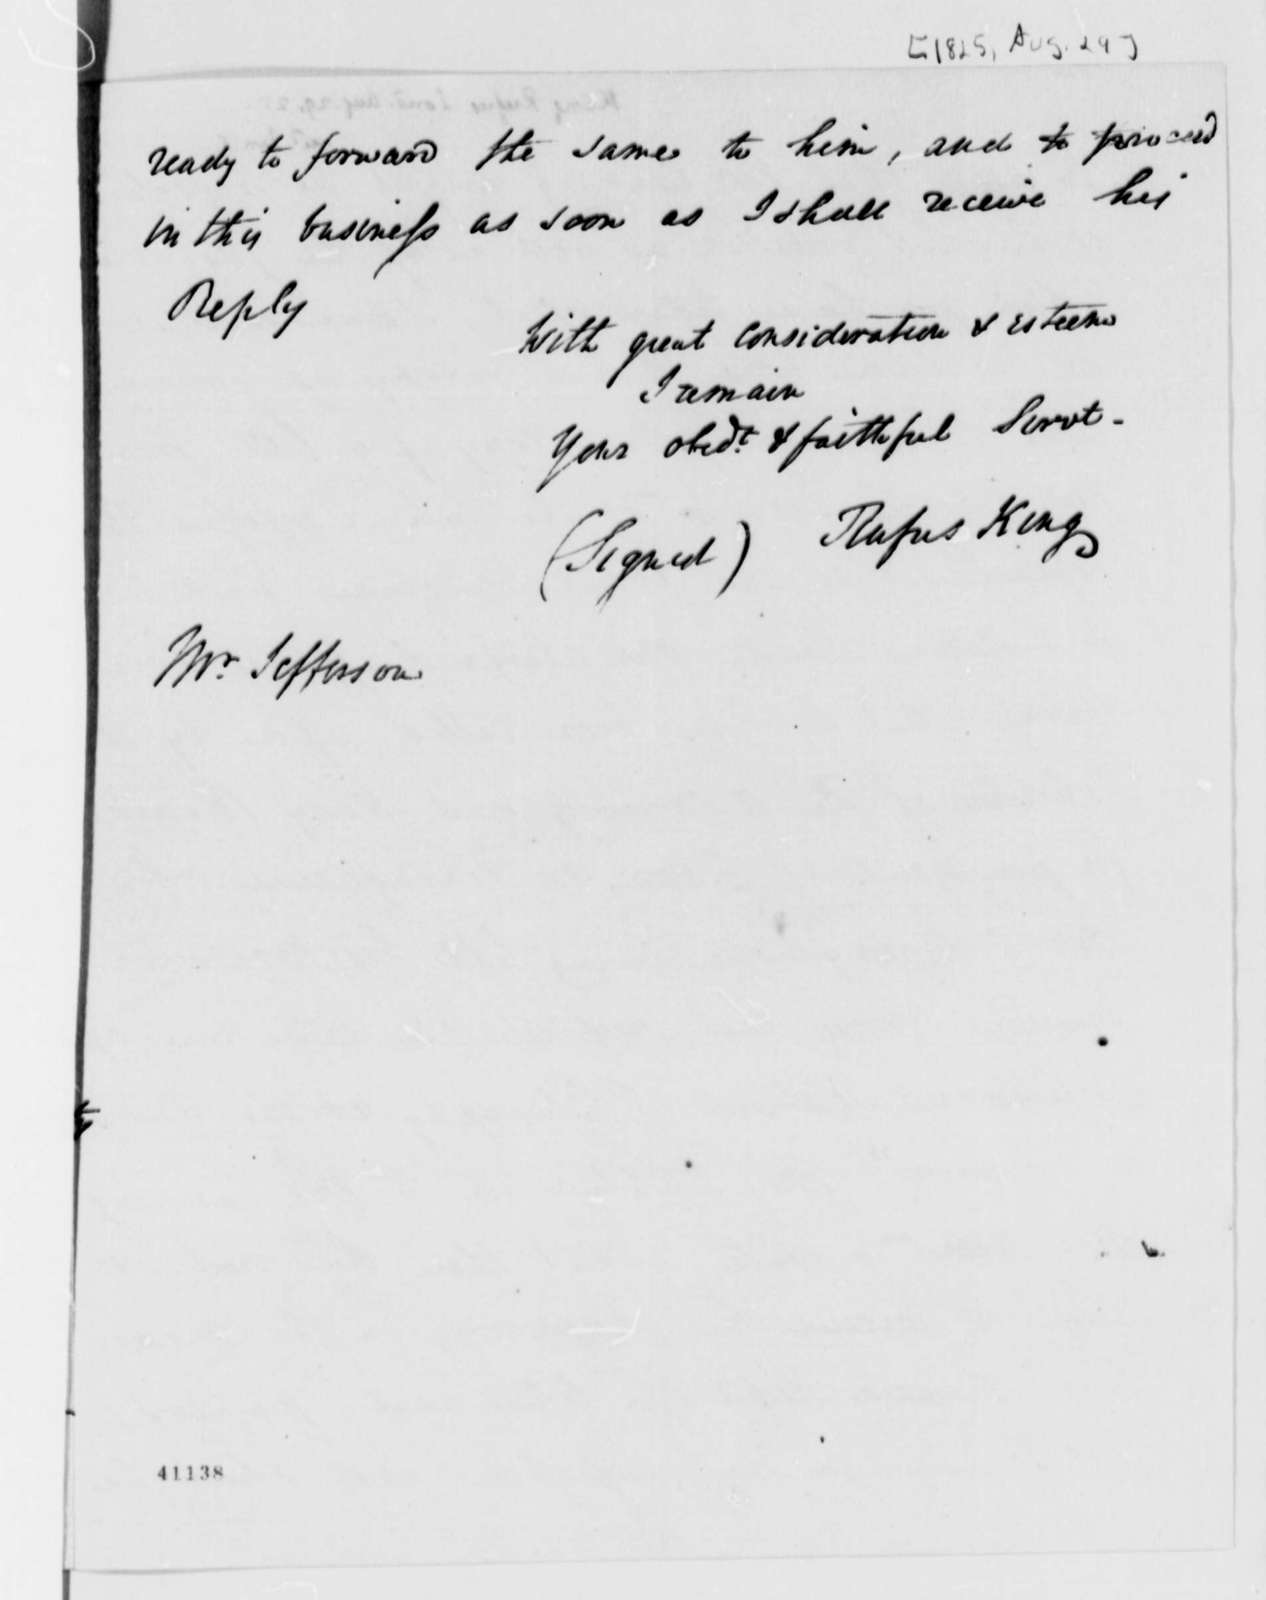 Rufus King to Thomas Jefferson, August 29, 1825